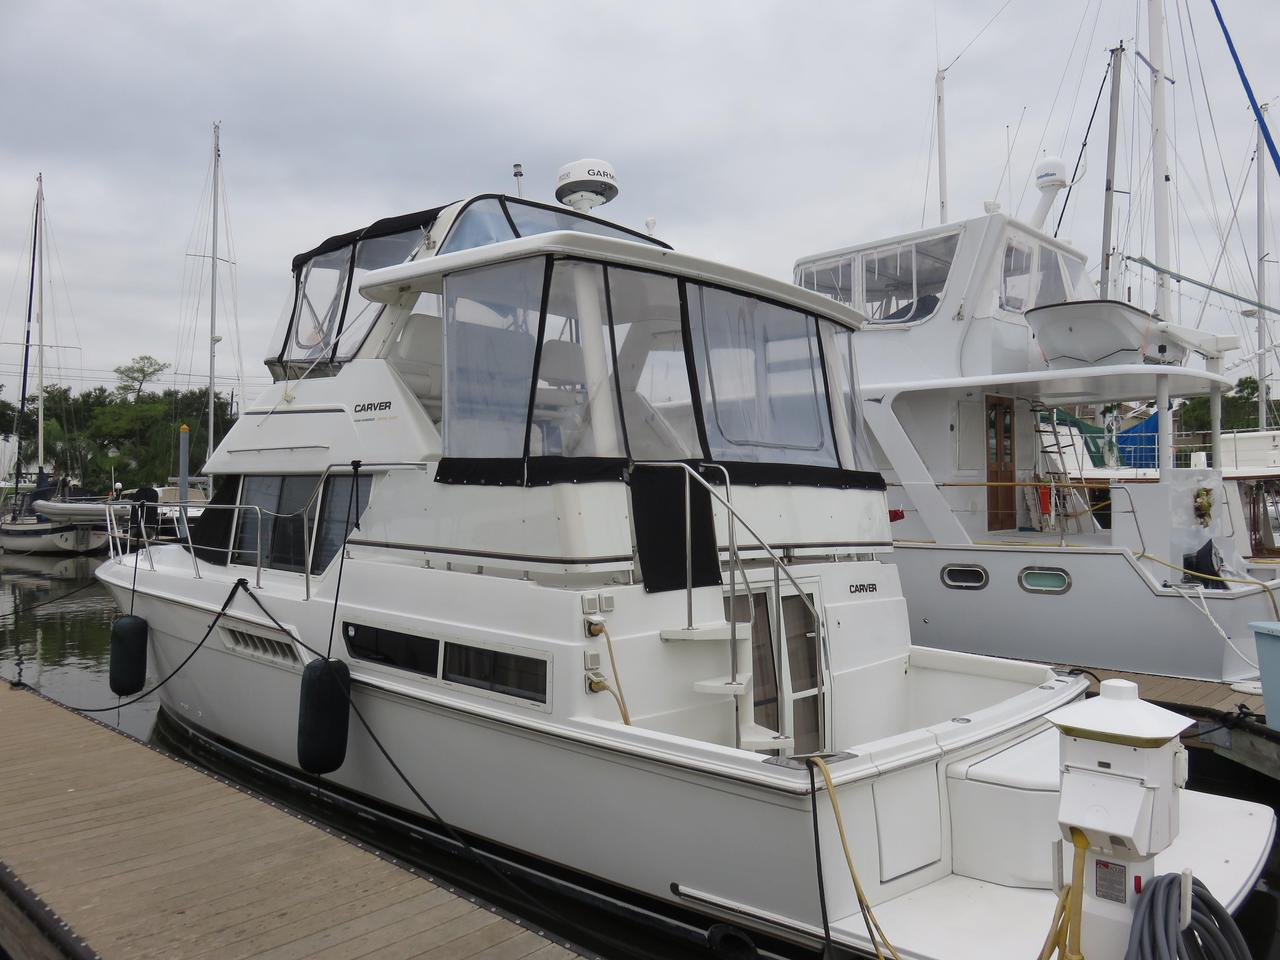 1997 used carver 400 cockpit motor yacht motor yacht for for Used motor yacht for sale